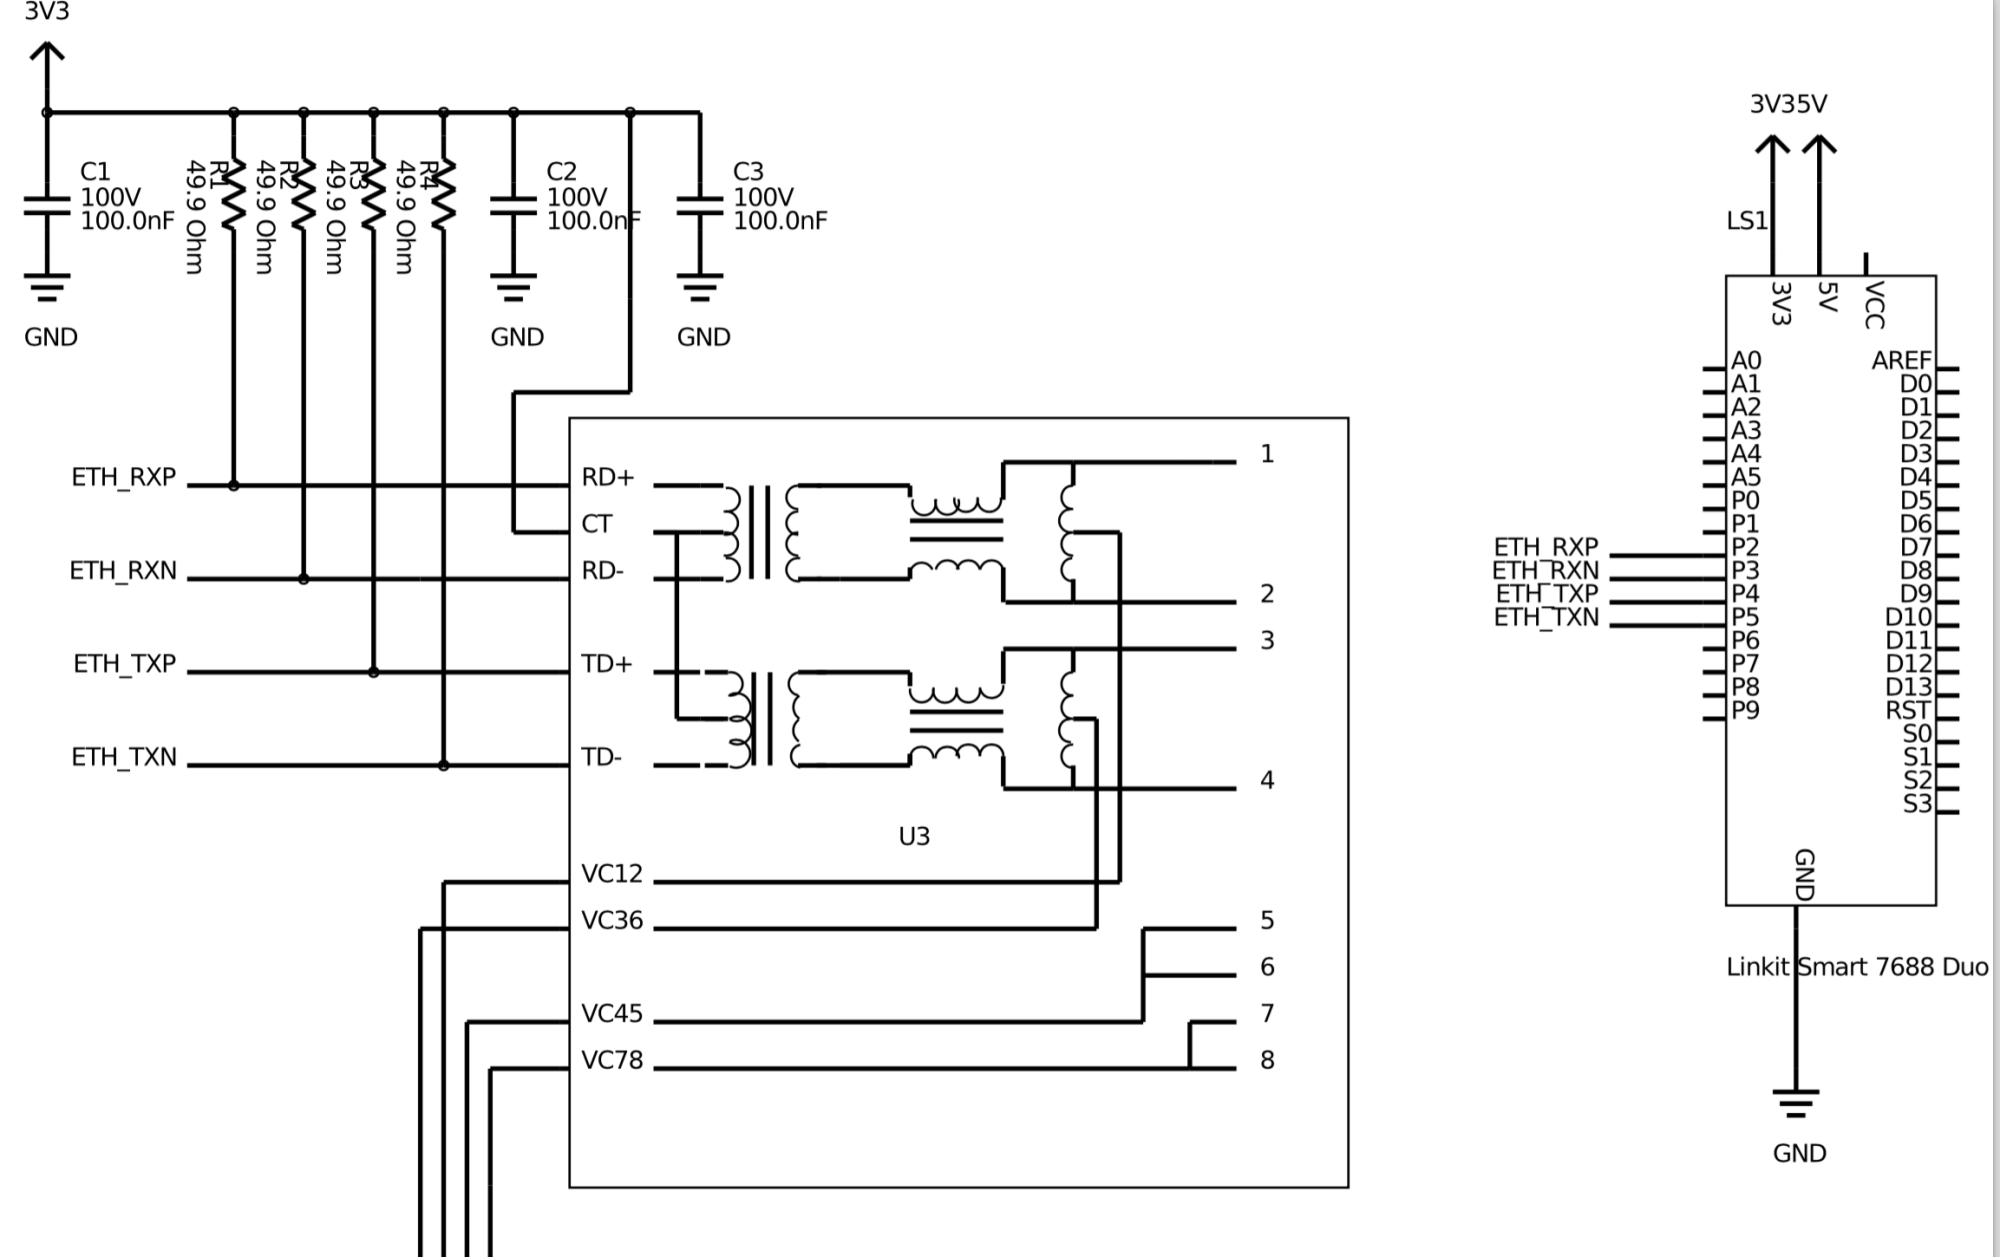 hight resolution of ethernet trace layout with poe integrated magnetics cat6 ethernet wiring ethernet wiring guide